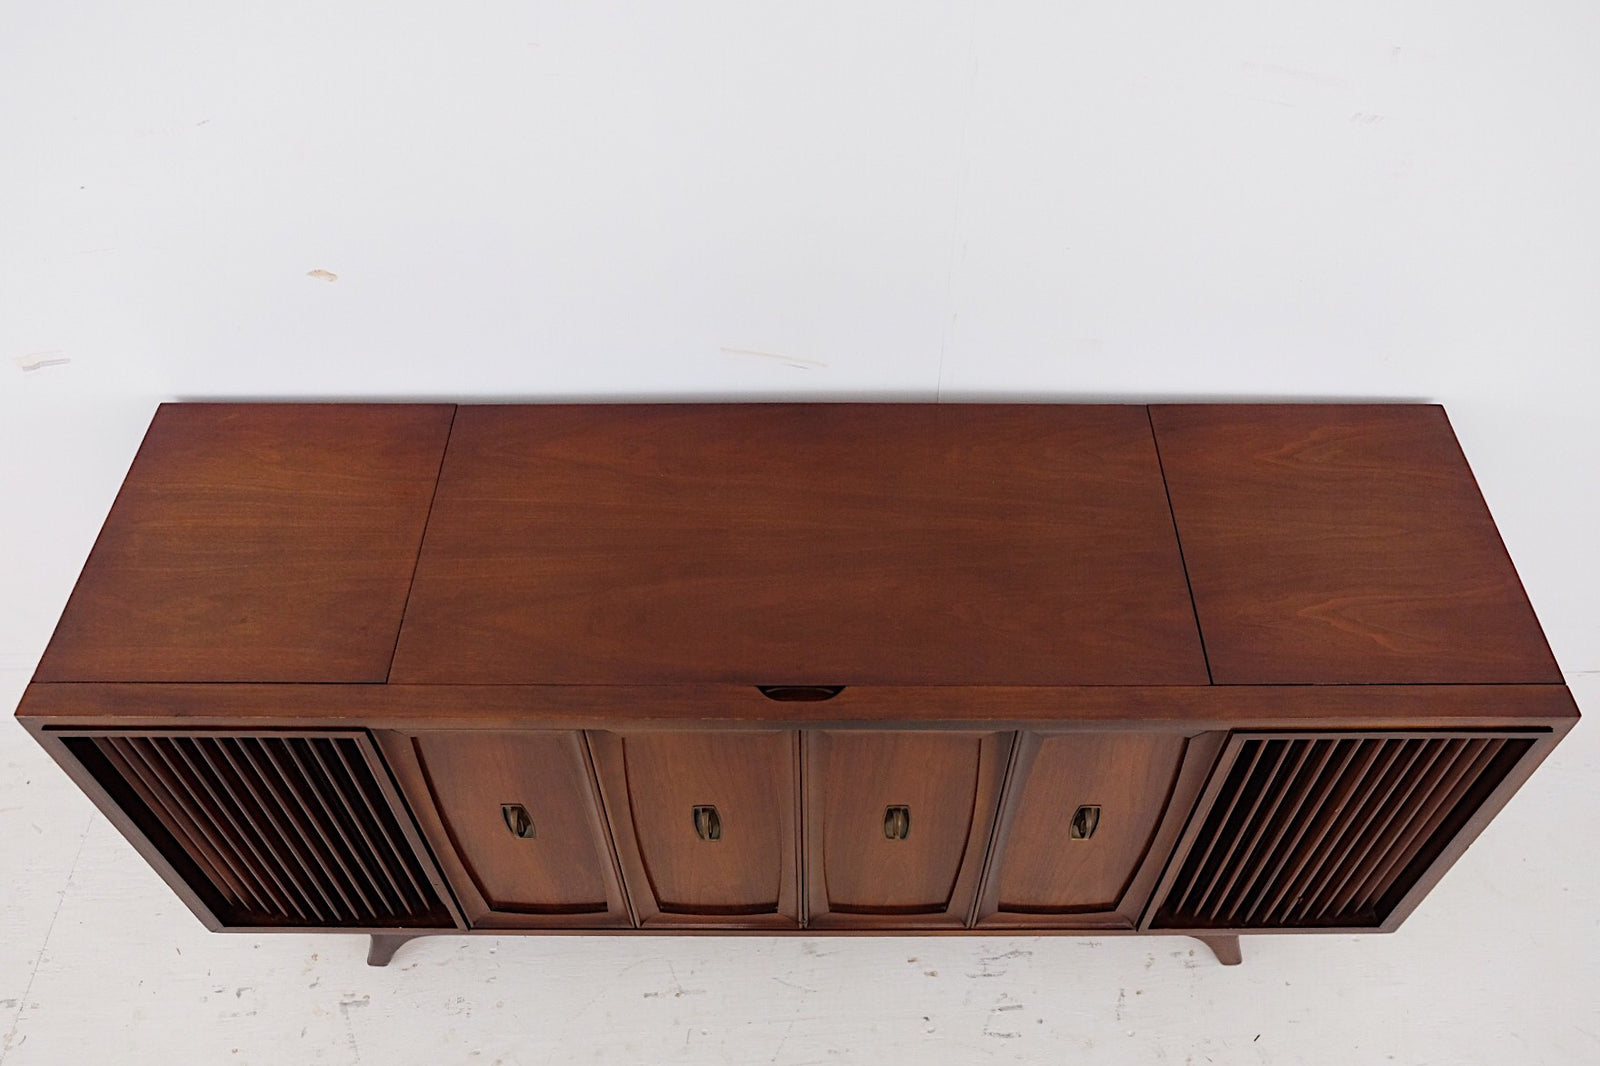 Zenith Mid Century Modern Stereo Radio Record Player Speakers Gorgeous Wood Grain TV Stand Media Center